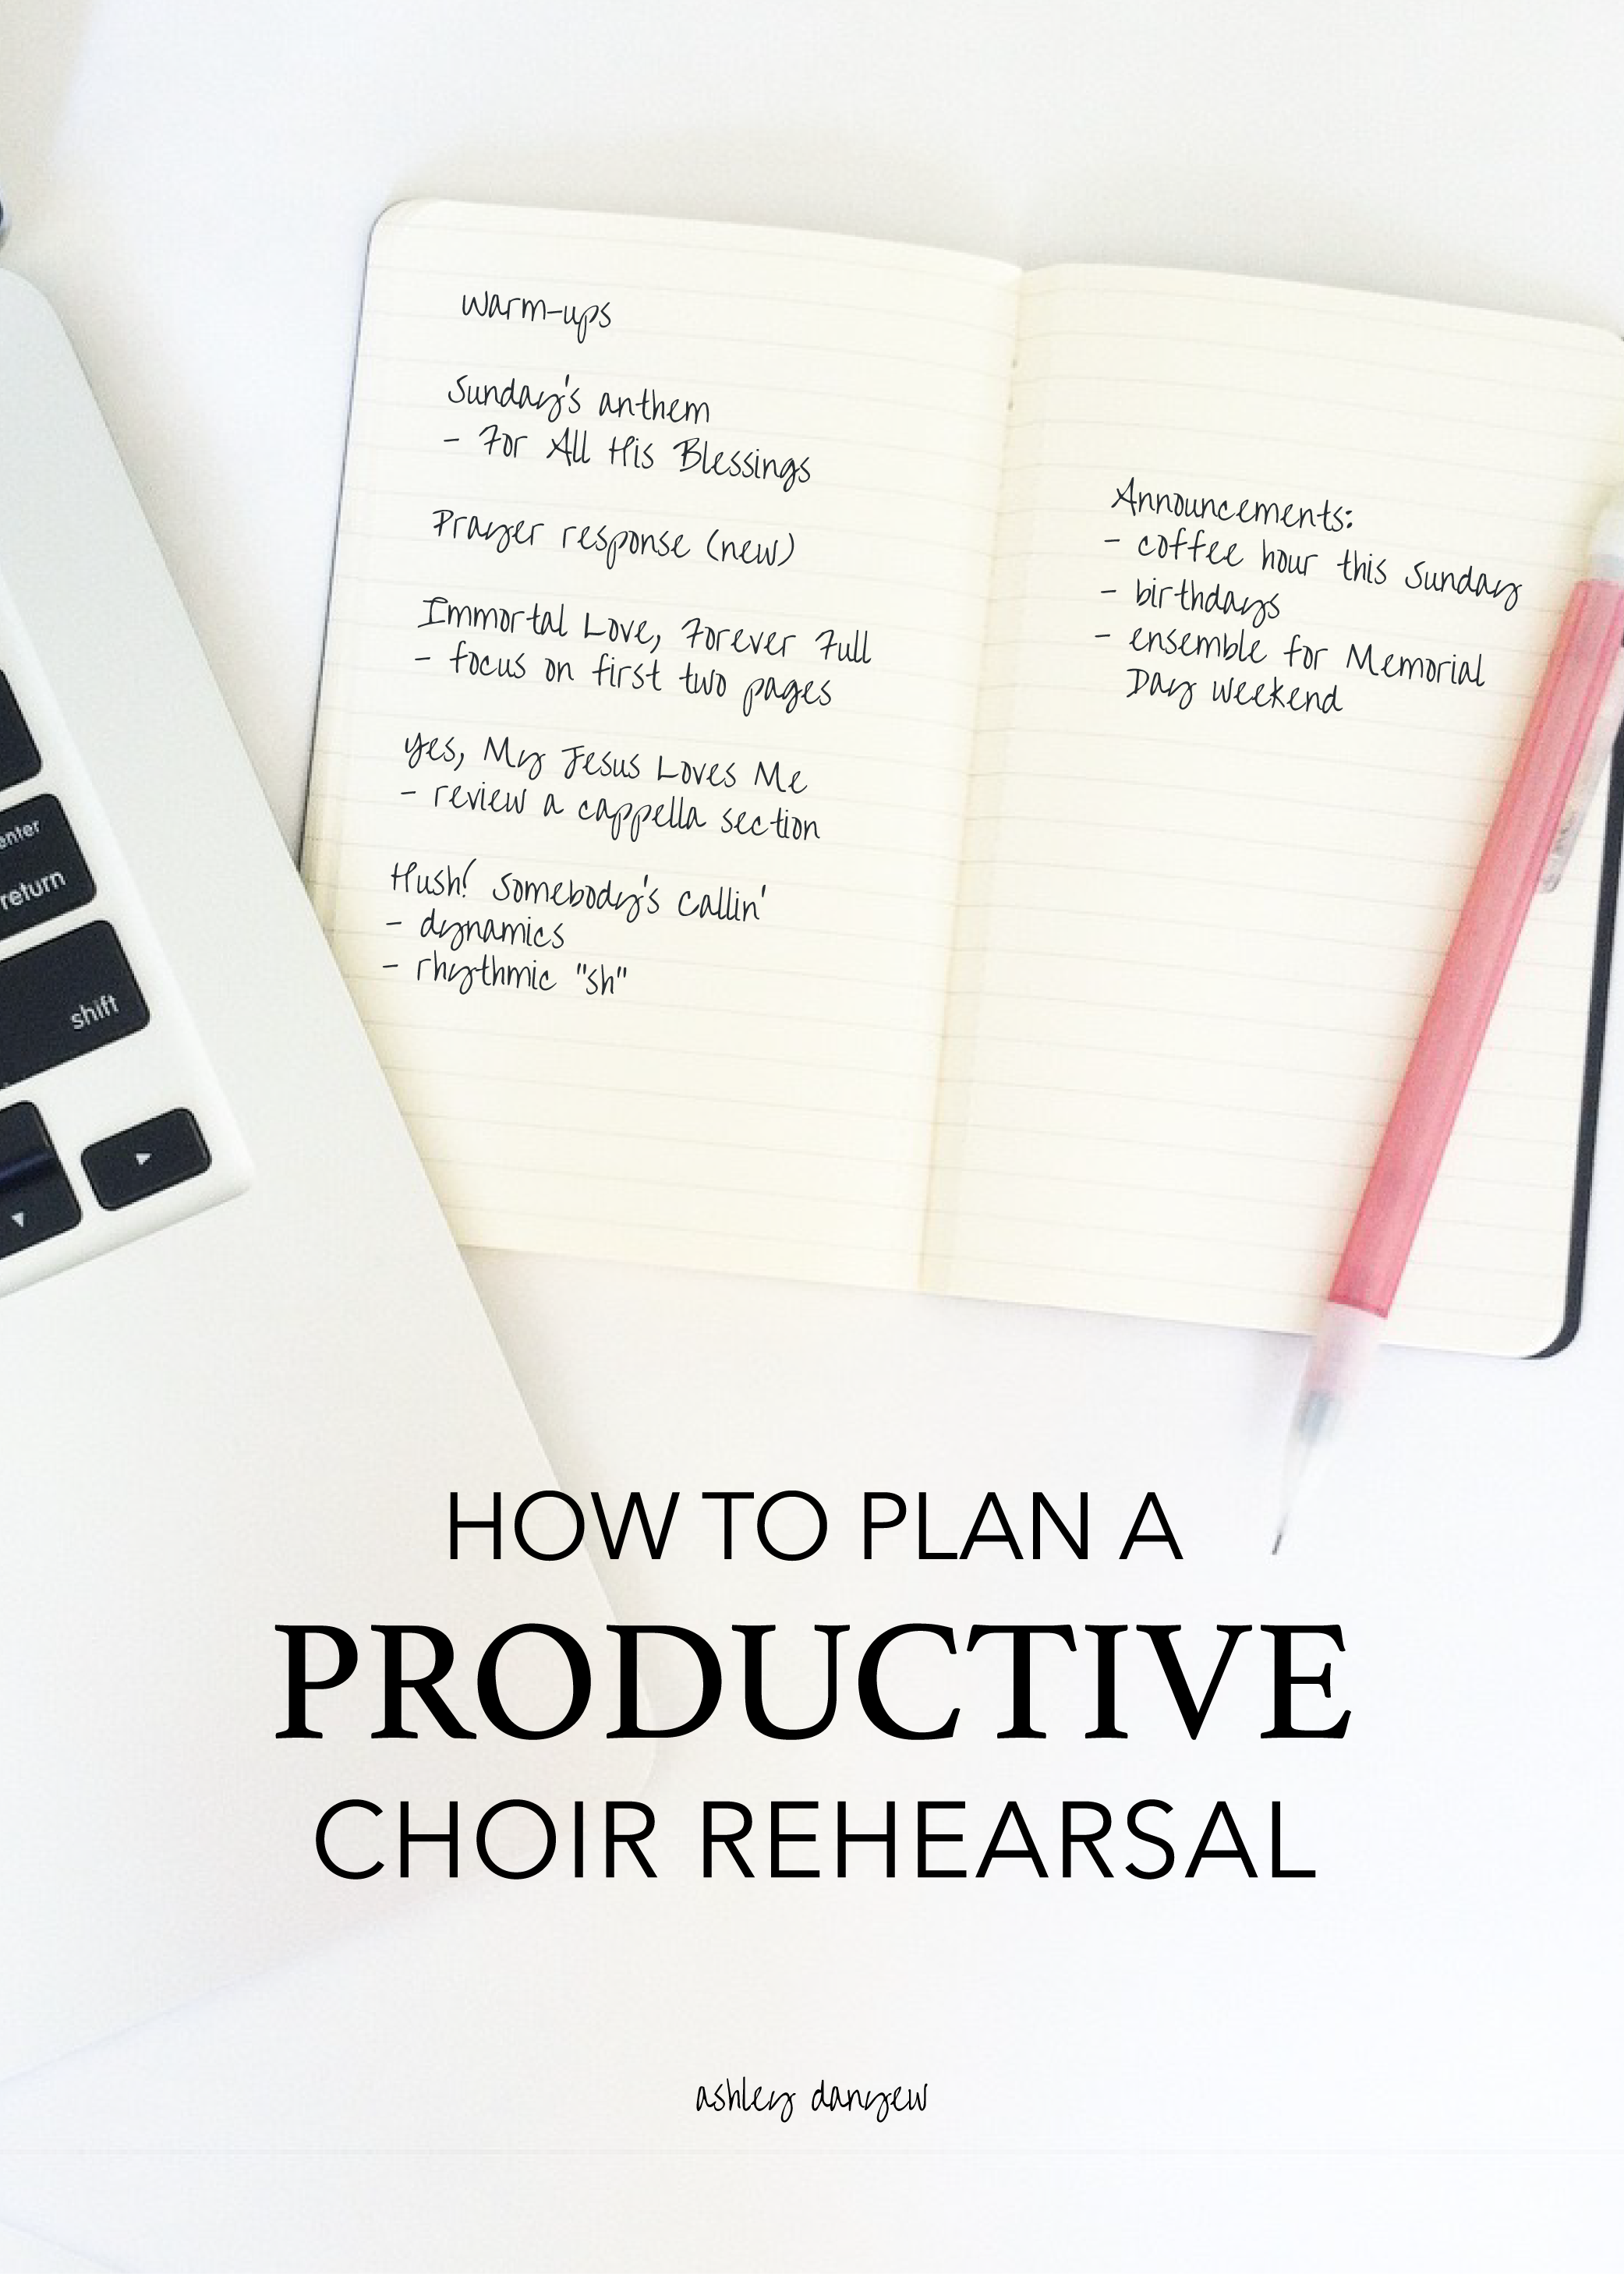 Copy of How to Plan a Productive Choir Rehearsal